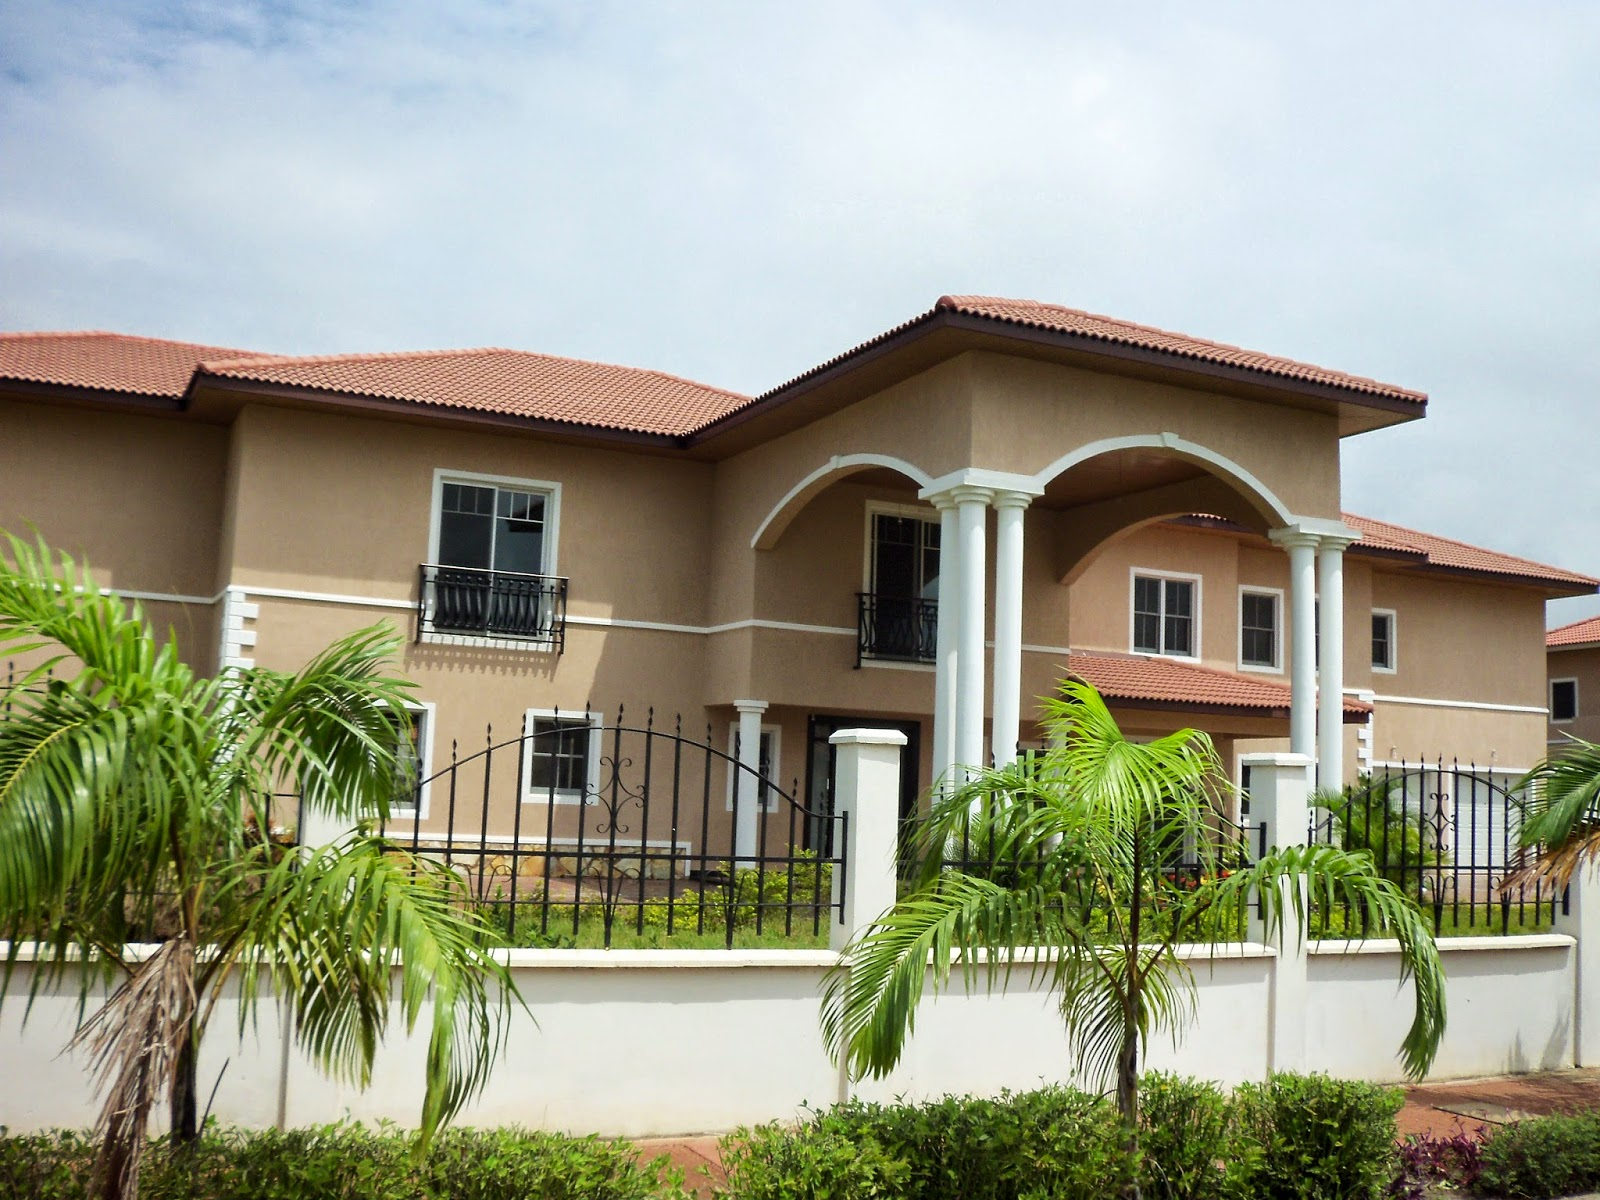 Kge properties house sale rent a house and land 5 for Modern houses in ghana